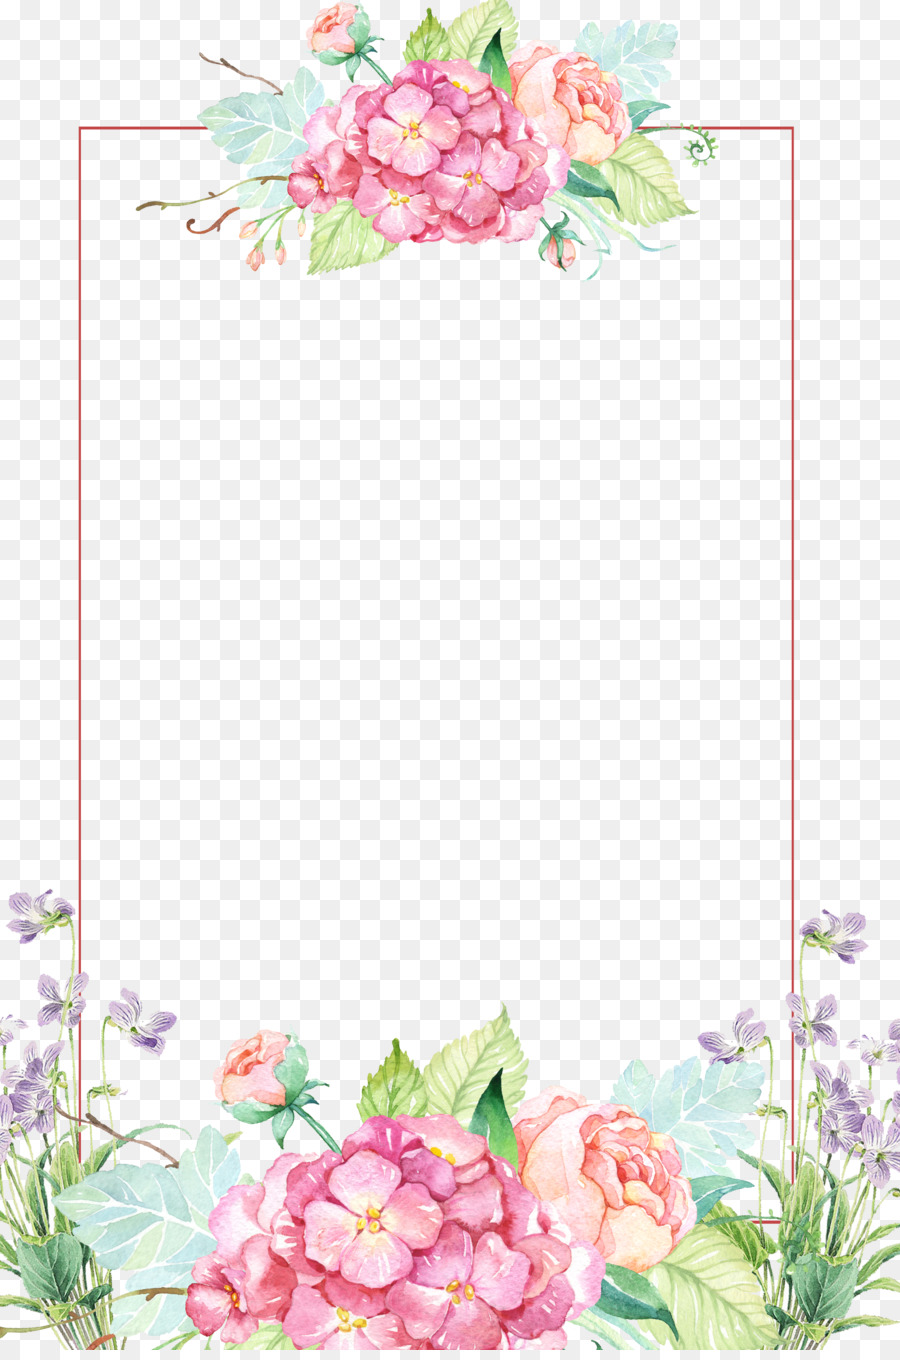 Frame Wedding Frame png download.